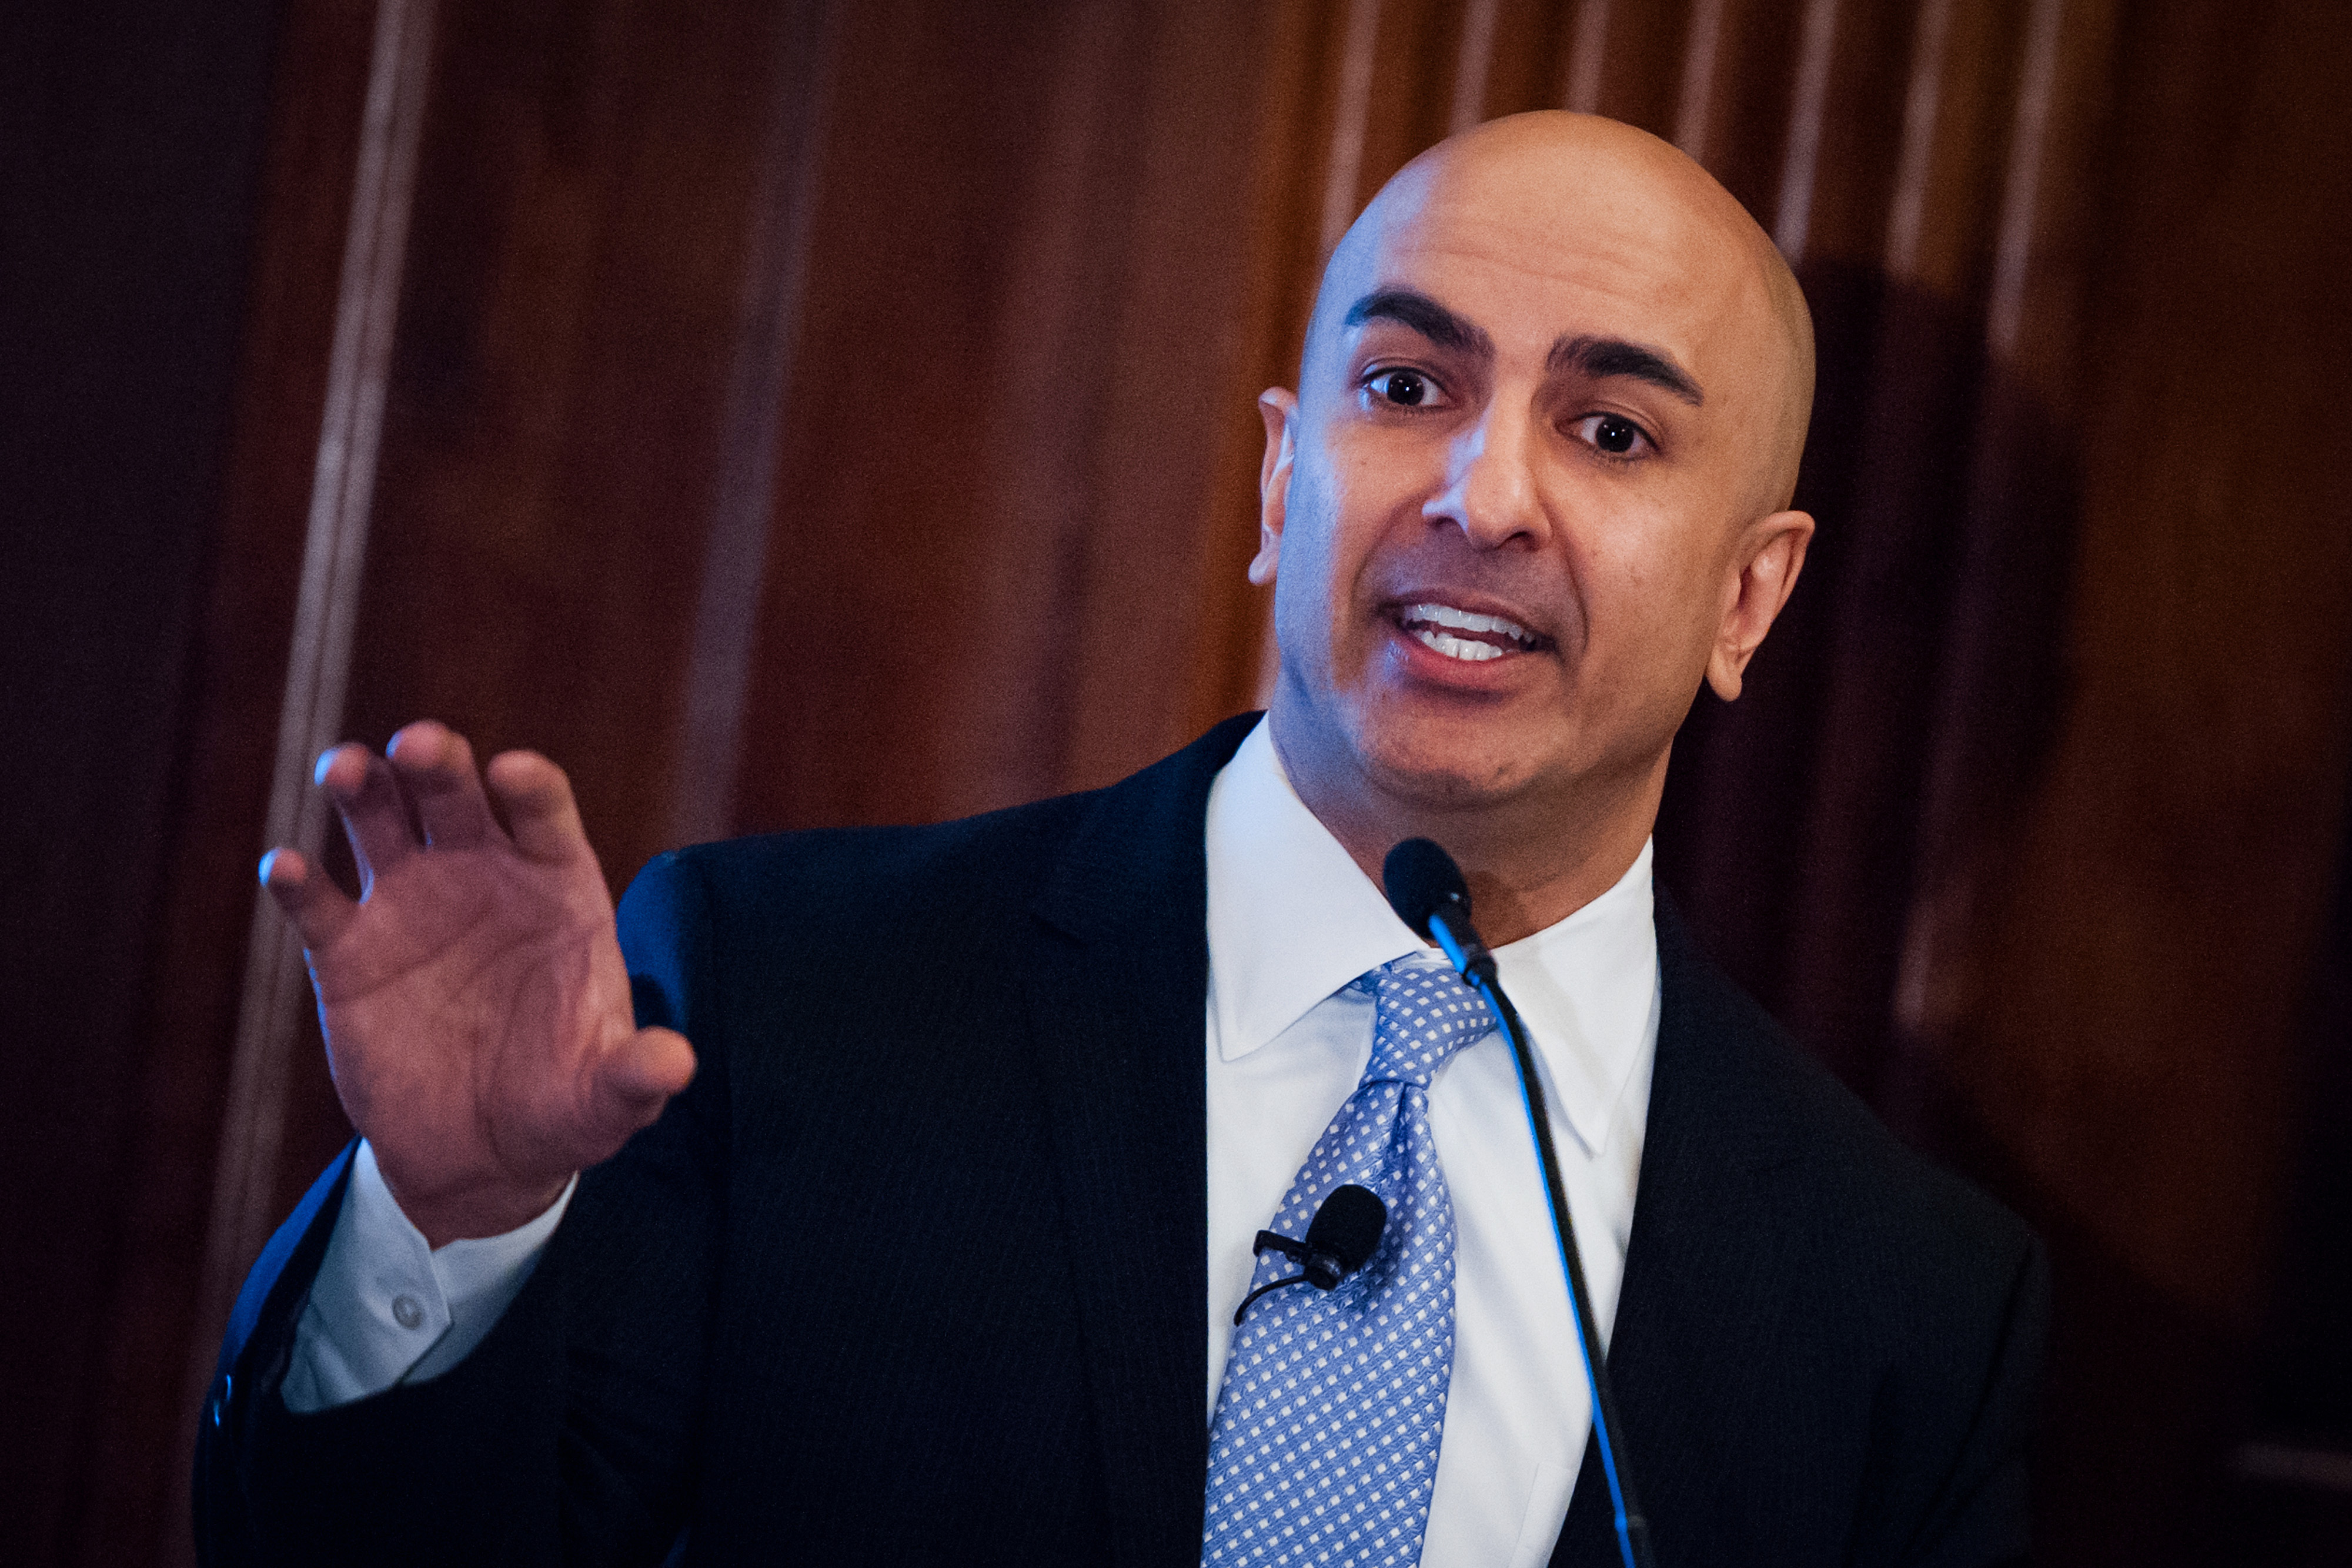 Neel Kashkari, president and chief executive officer of the Federal Reserve Bank of Minneapolis, speaks at the Economic Club of New York Nov. 16, 2016.